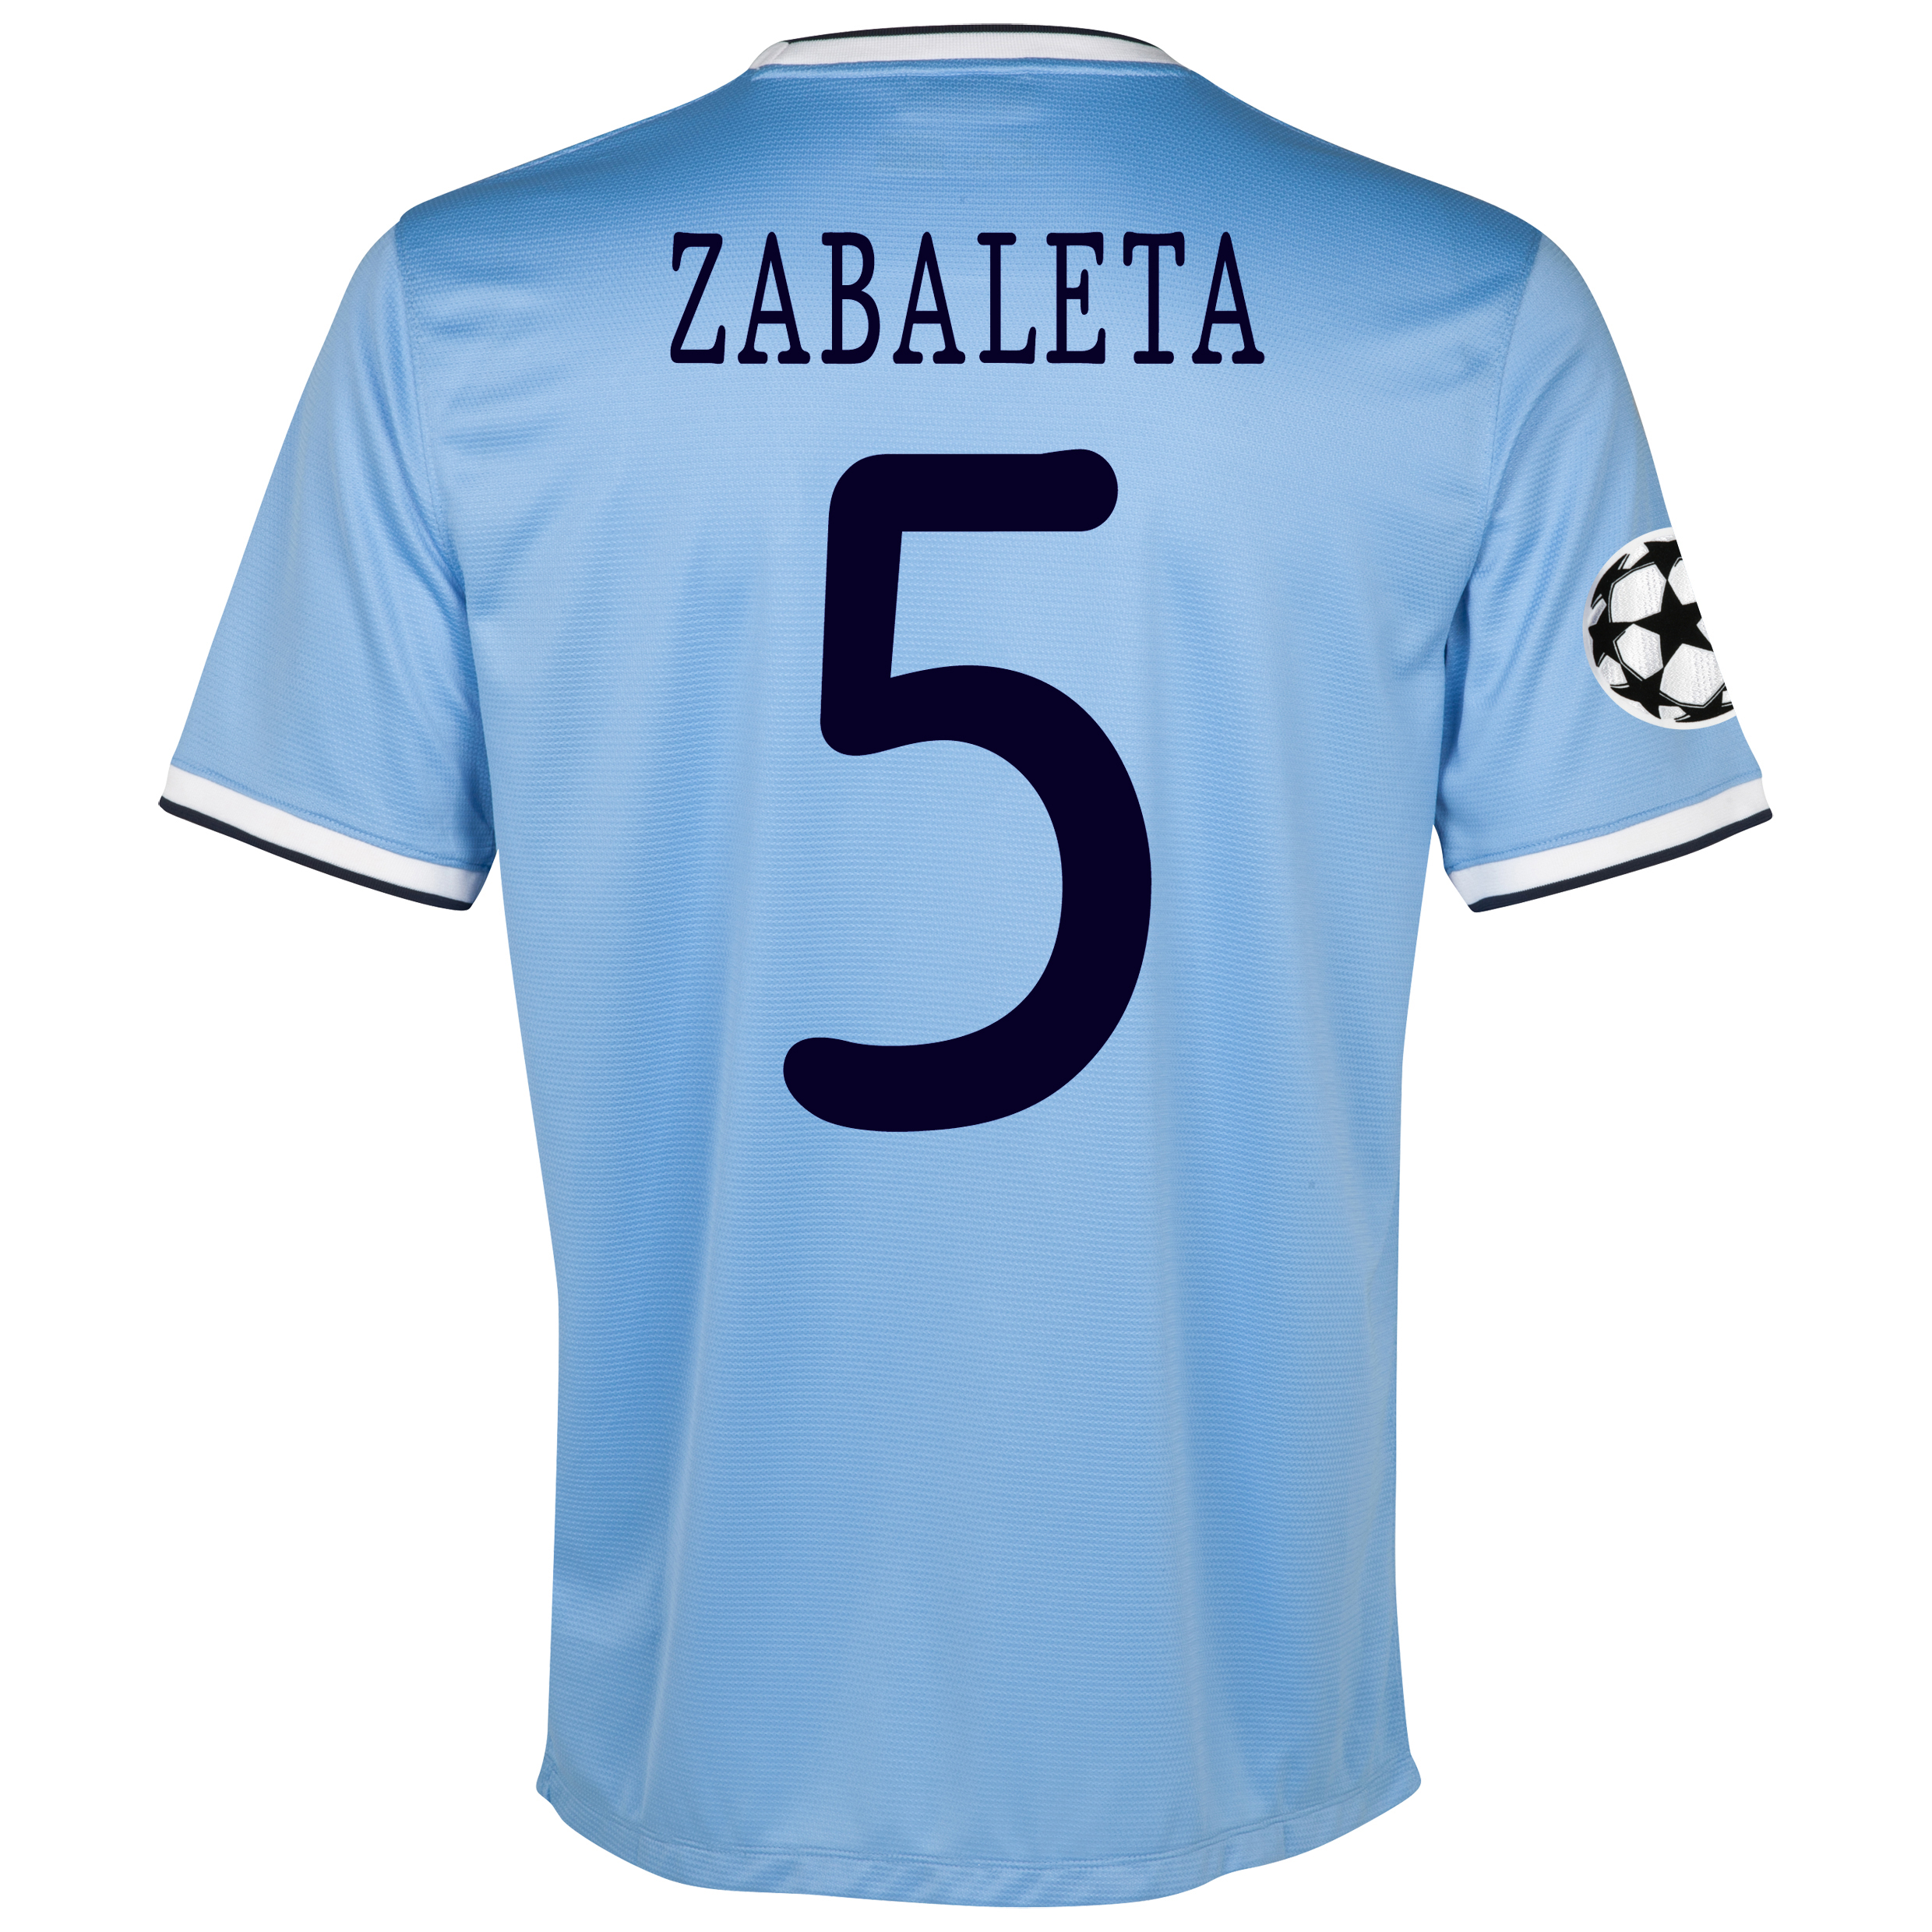 Manchester City UEFA Champions League Home Shirt 2013/14 - Junior with Zabaleta 5 printing